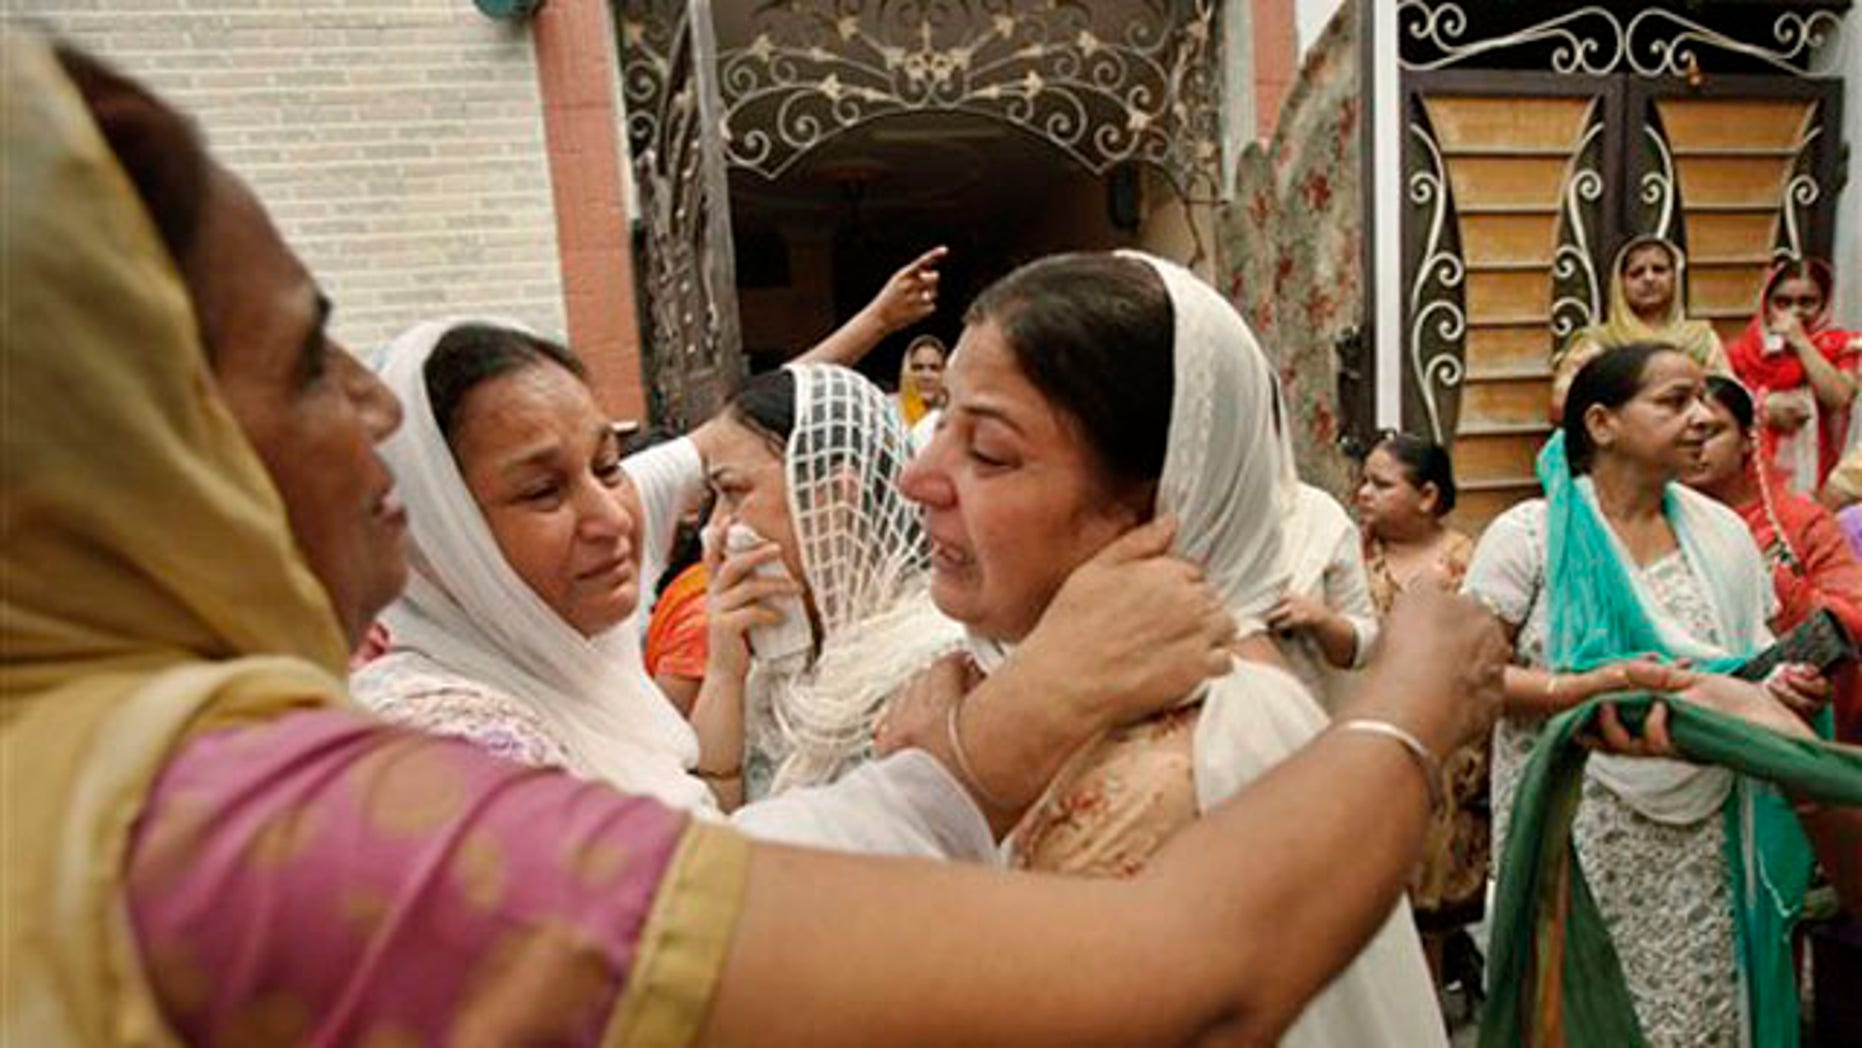 Relatives of blast victim Inder Singh mourn as his body is taken for cremation in New Delhi, India, Thursday, Sept. 8, 2011.